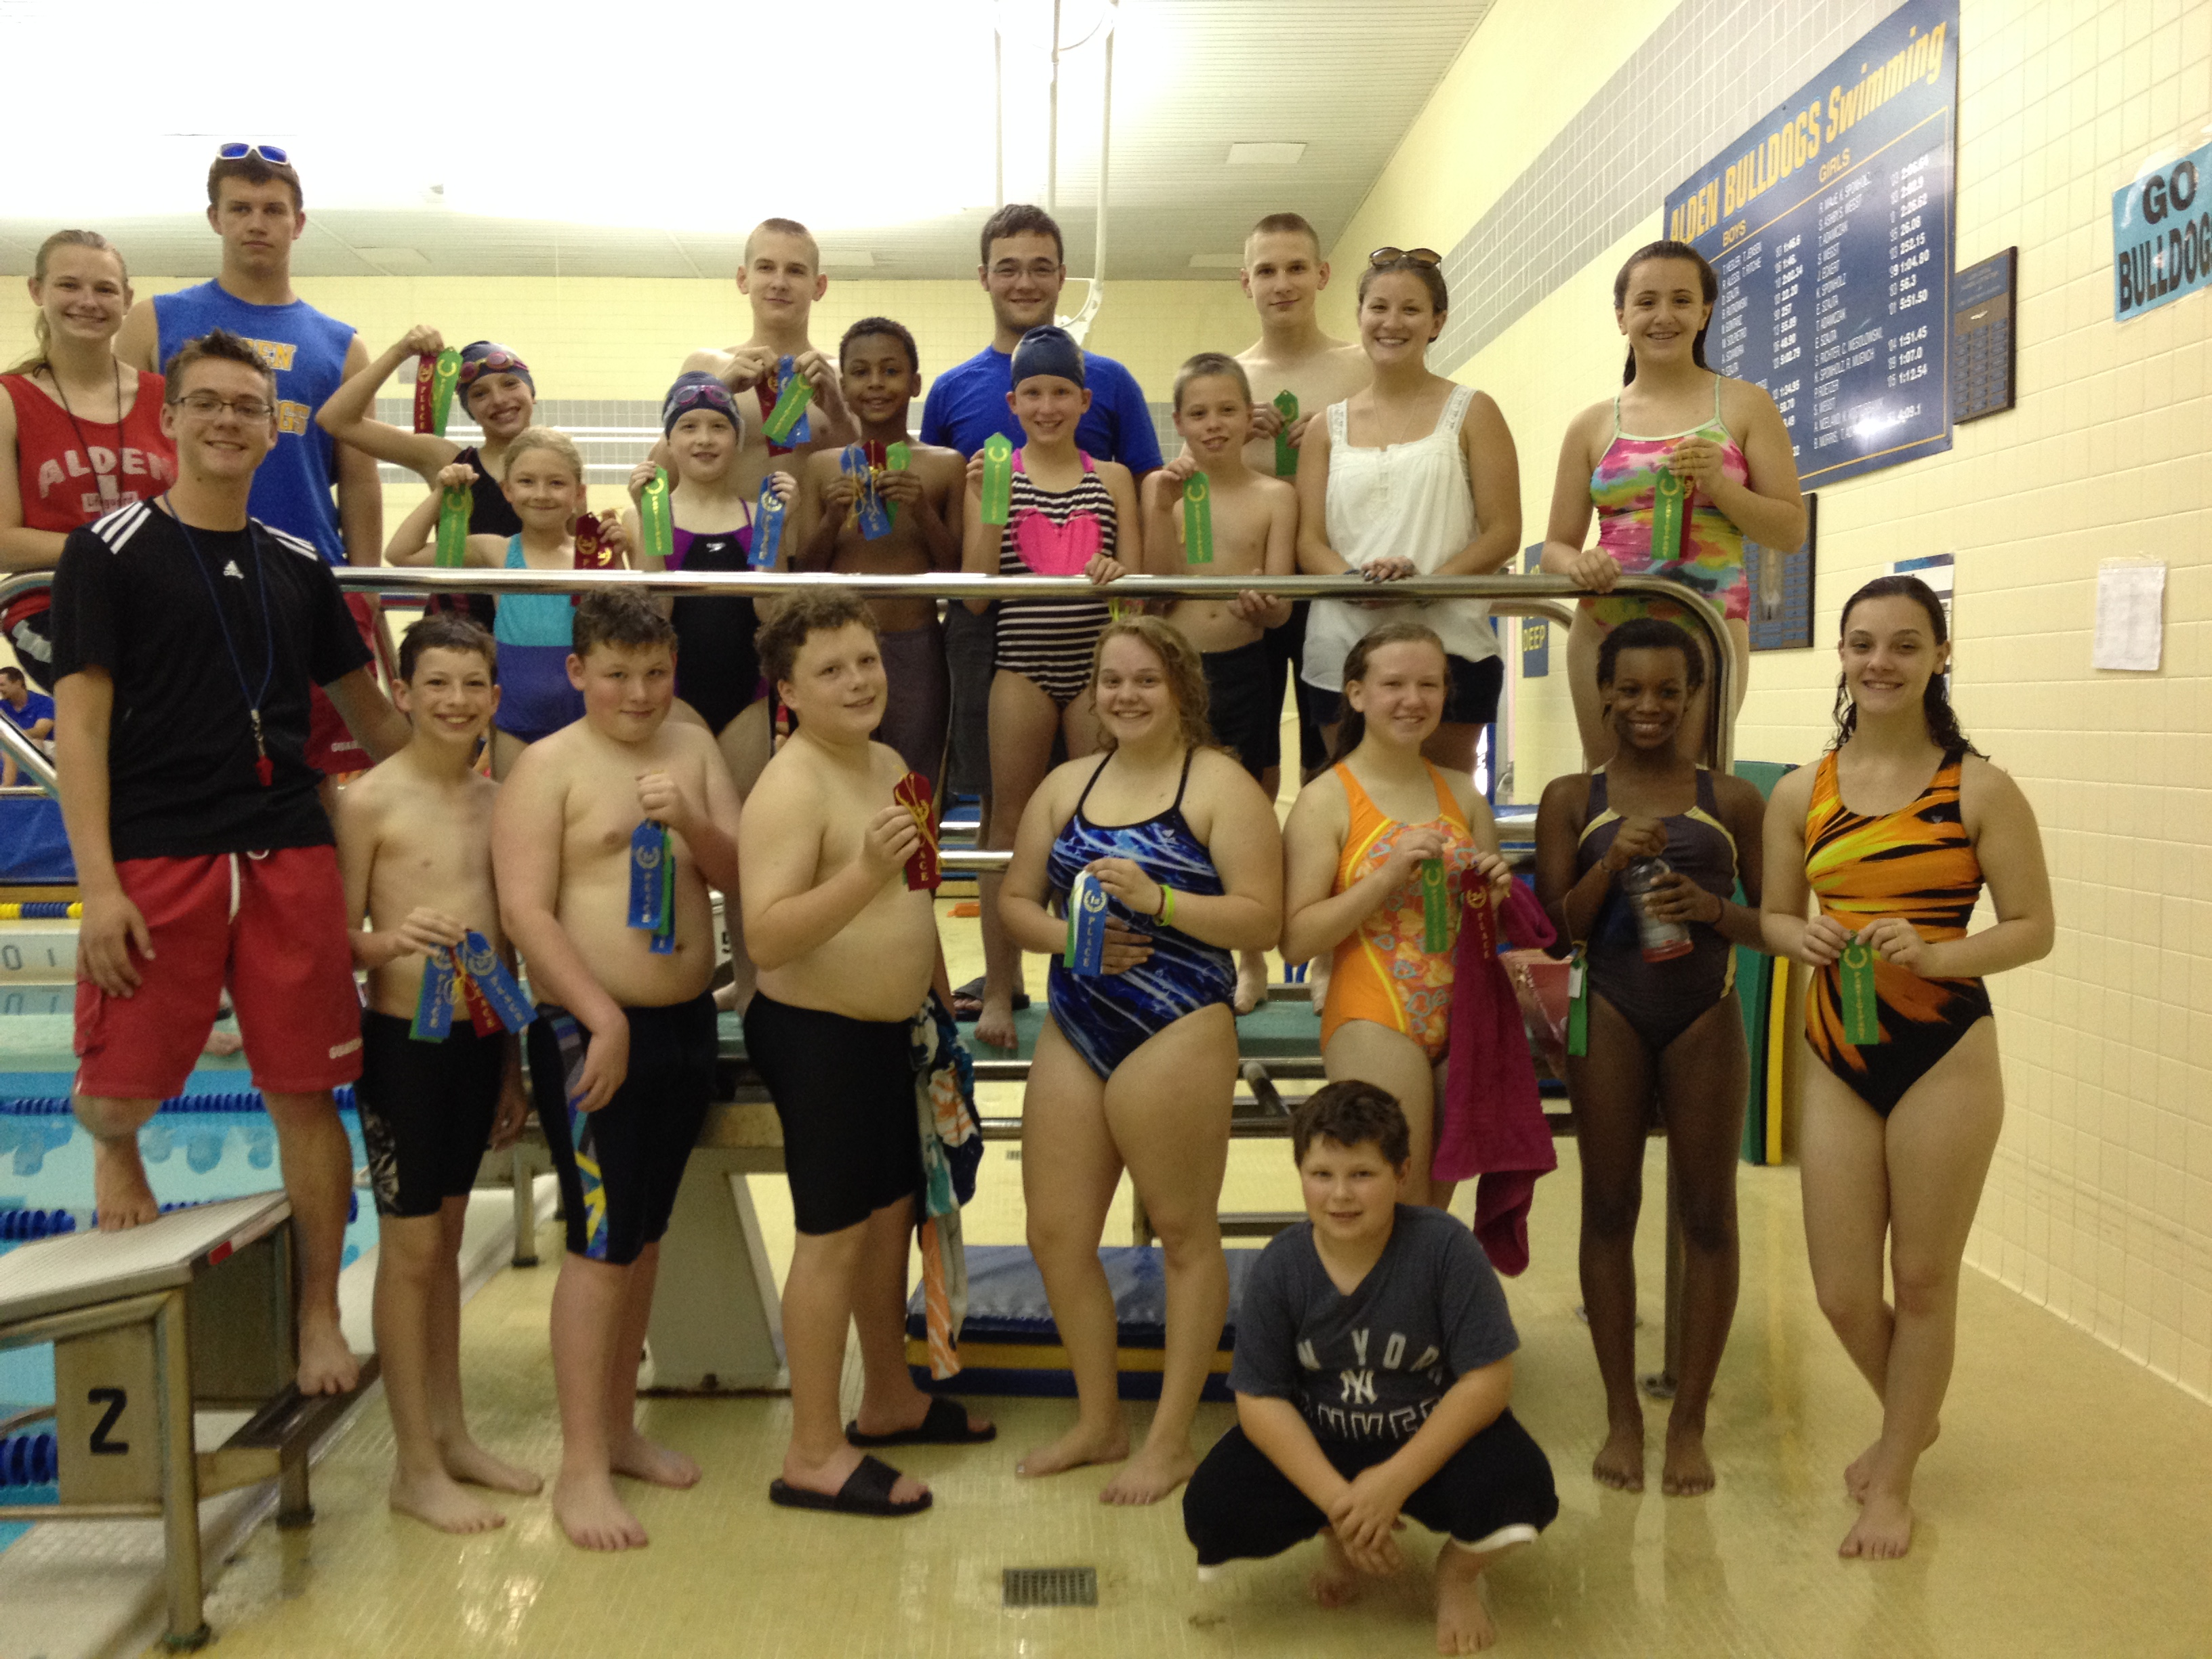 Alden Bulldog Swim Club